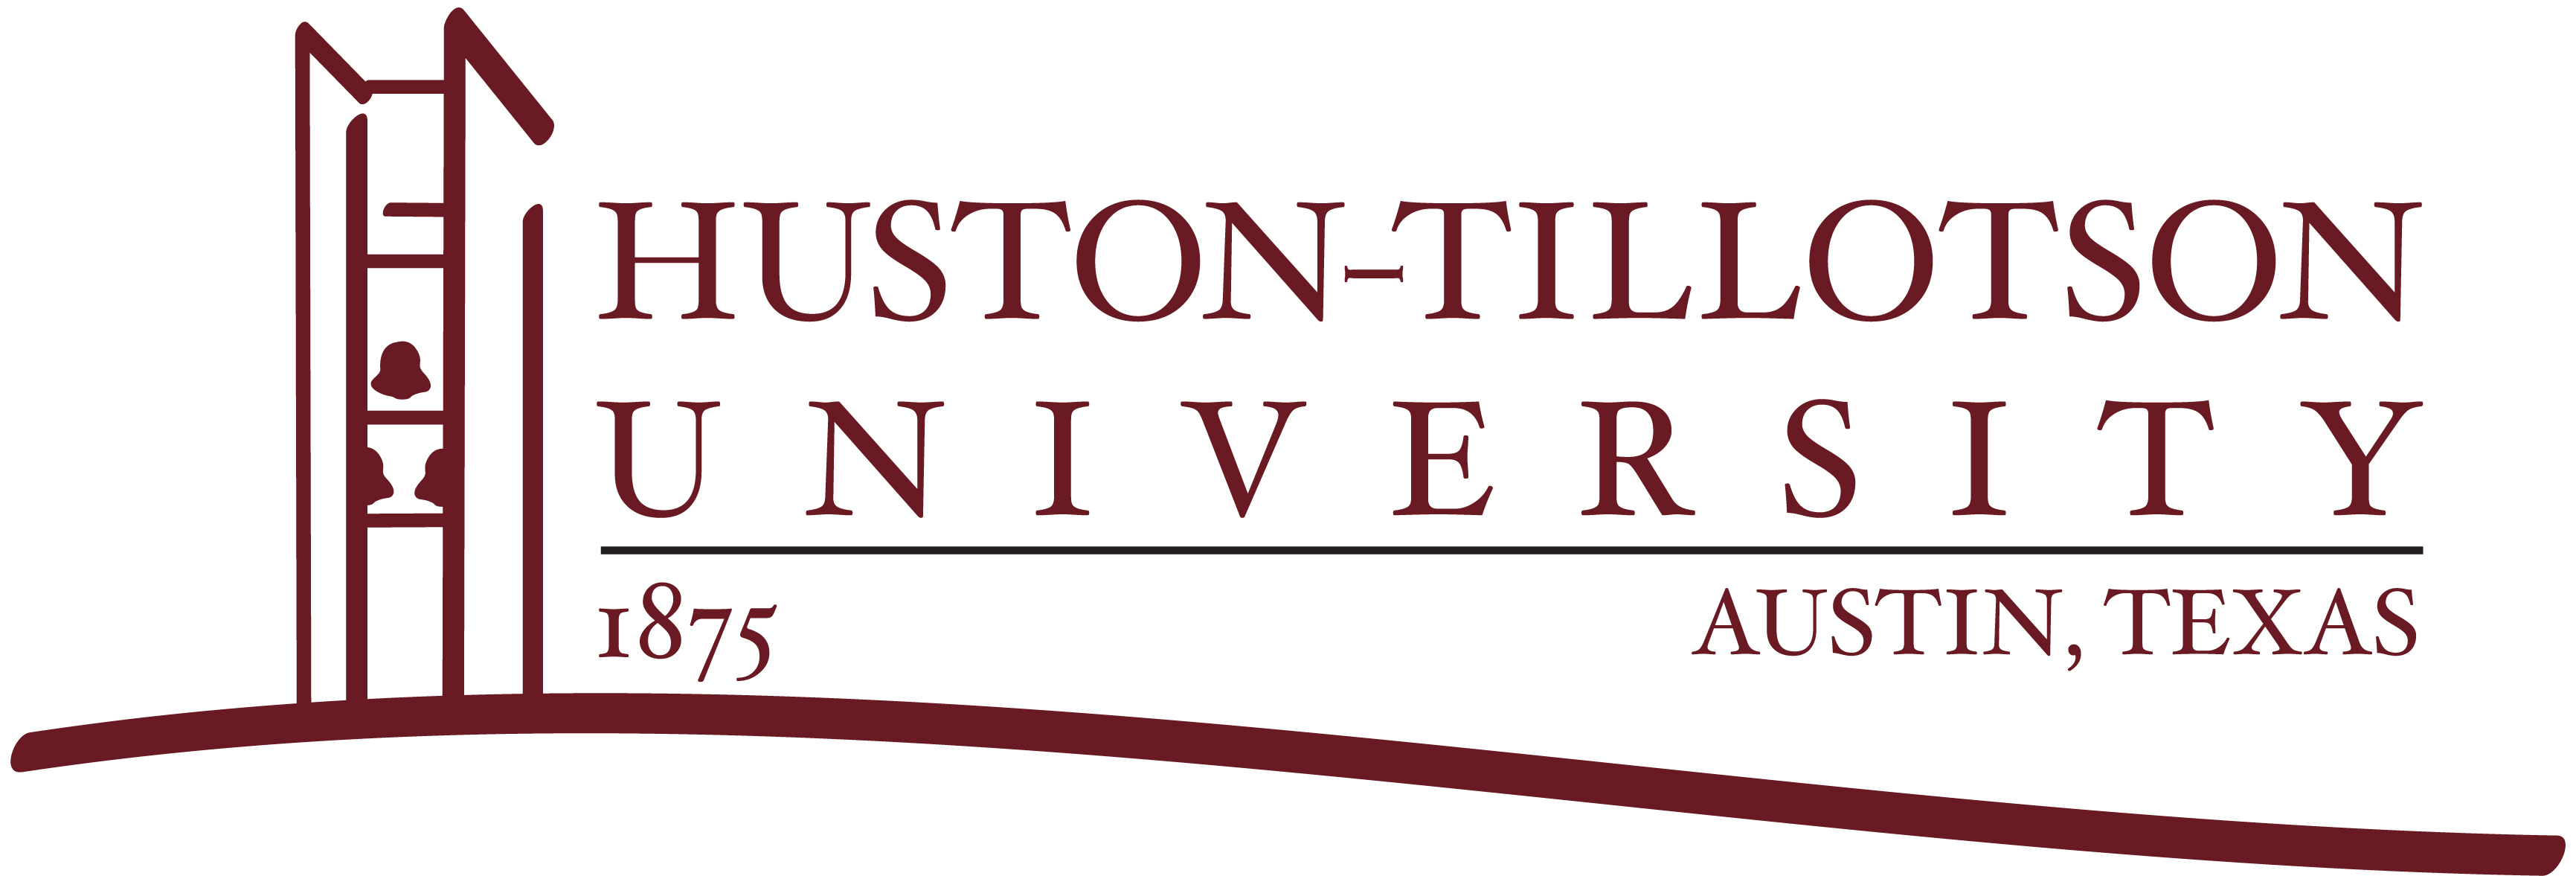 Huston-Tillotson University logo